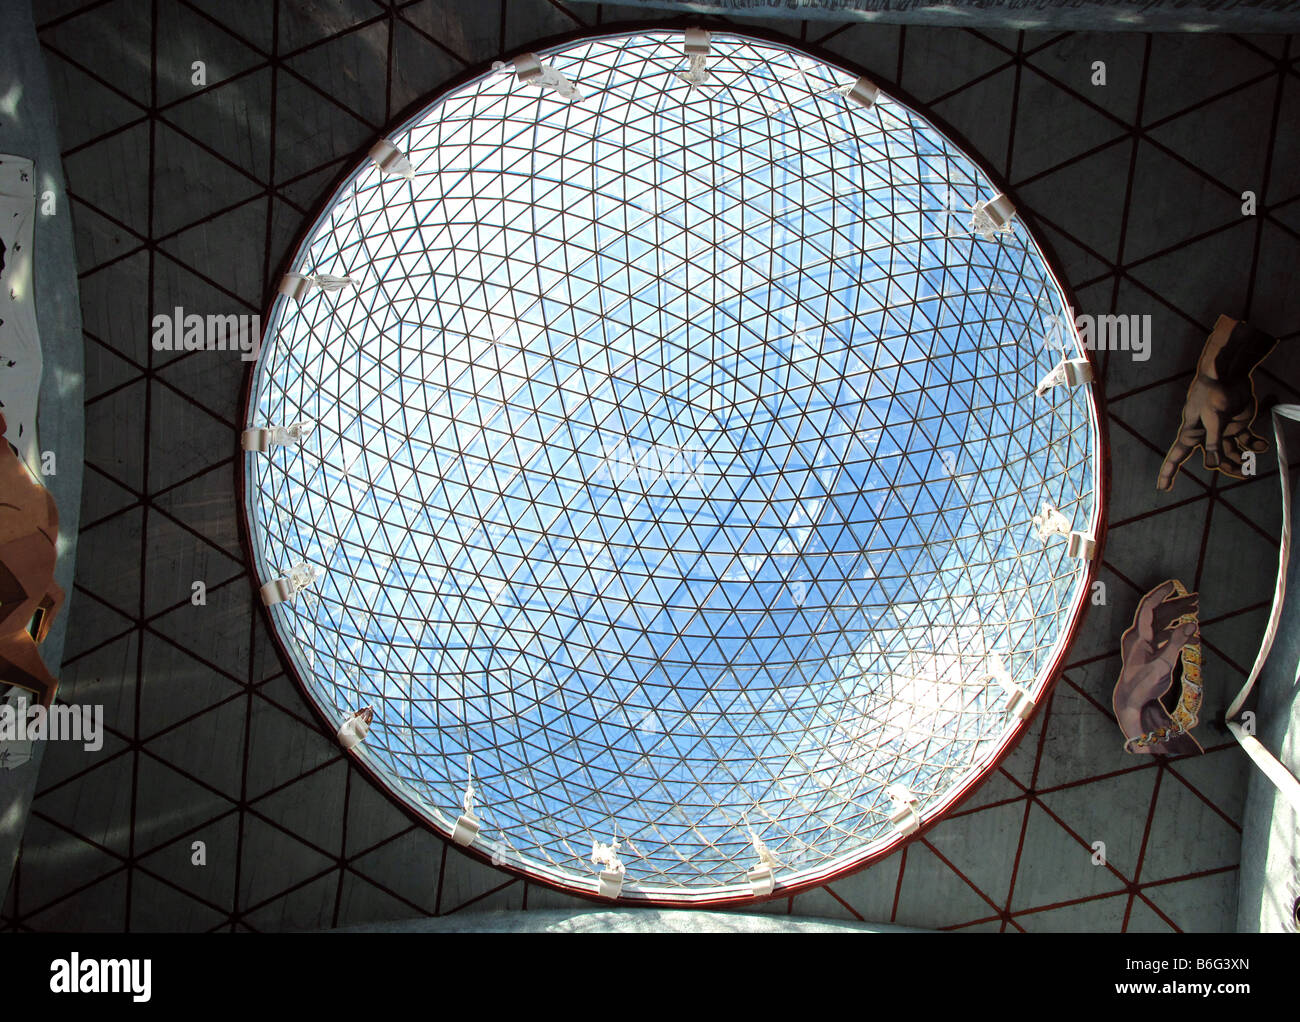 Internal view of domed glass roof of Teatre Museu Dali - Salvador Dali Museum, Figures, Catalonia, Spain - Stock Image